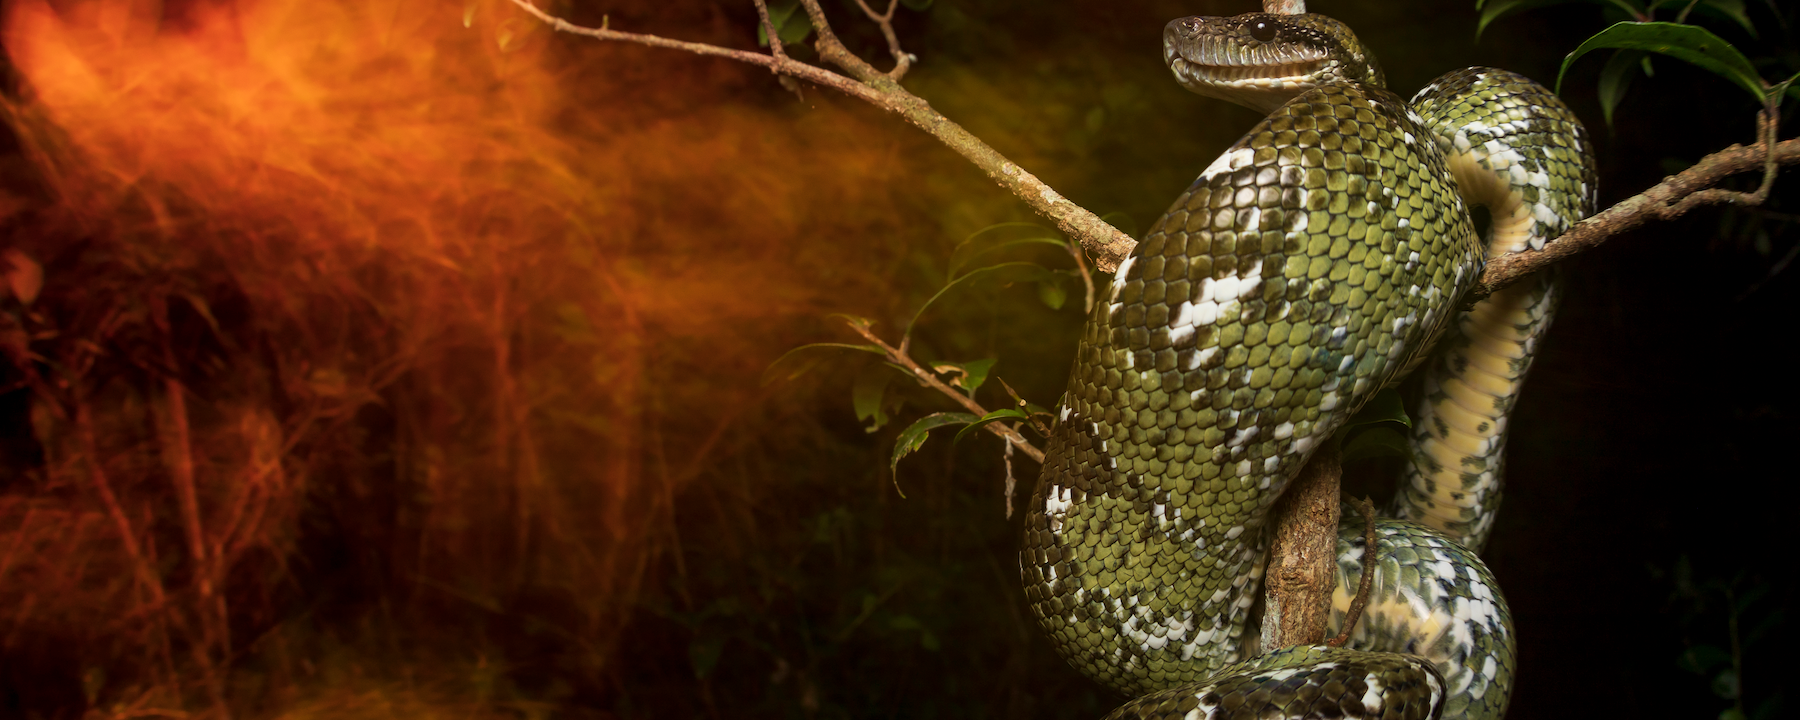 Image of the Day: Snake in Smoke